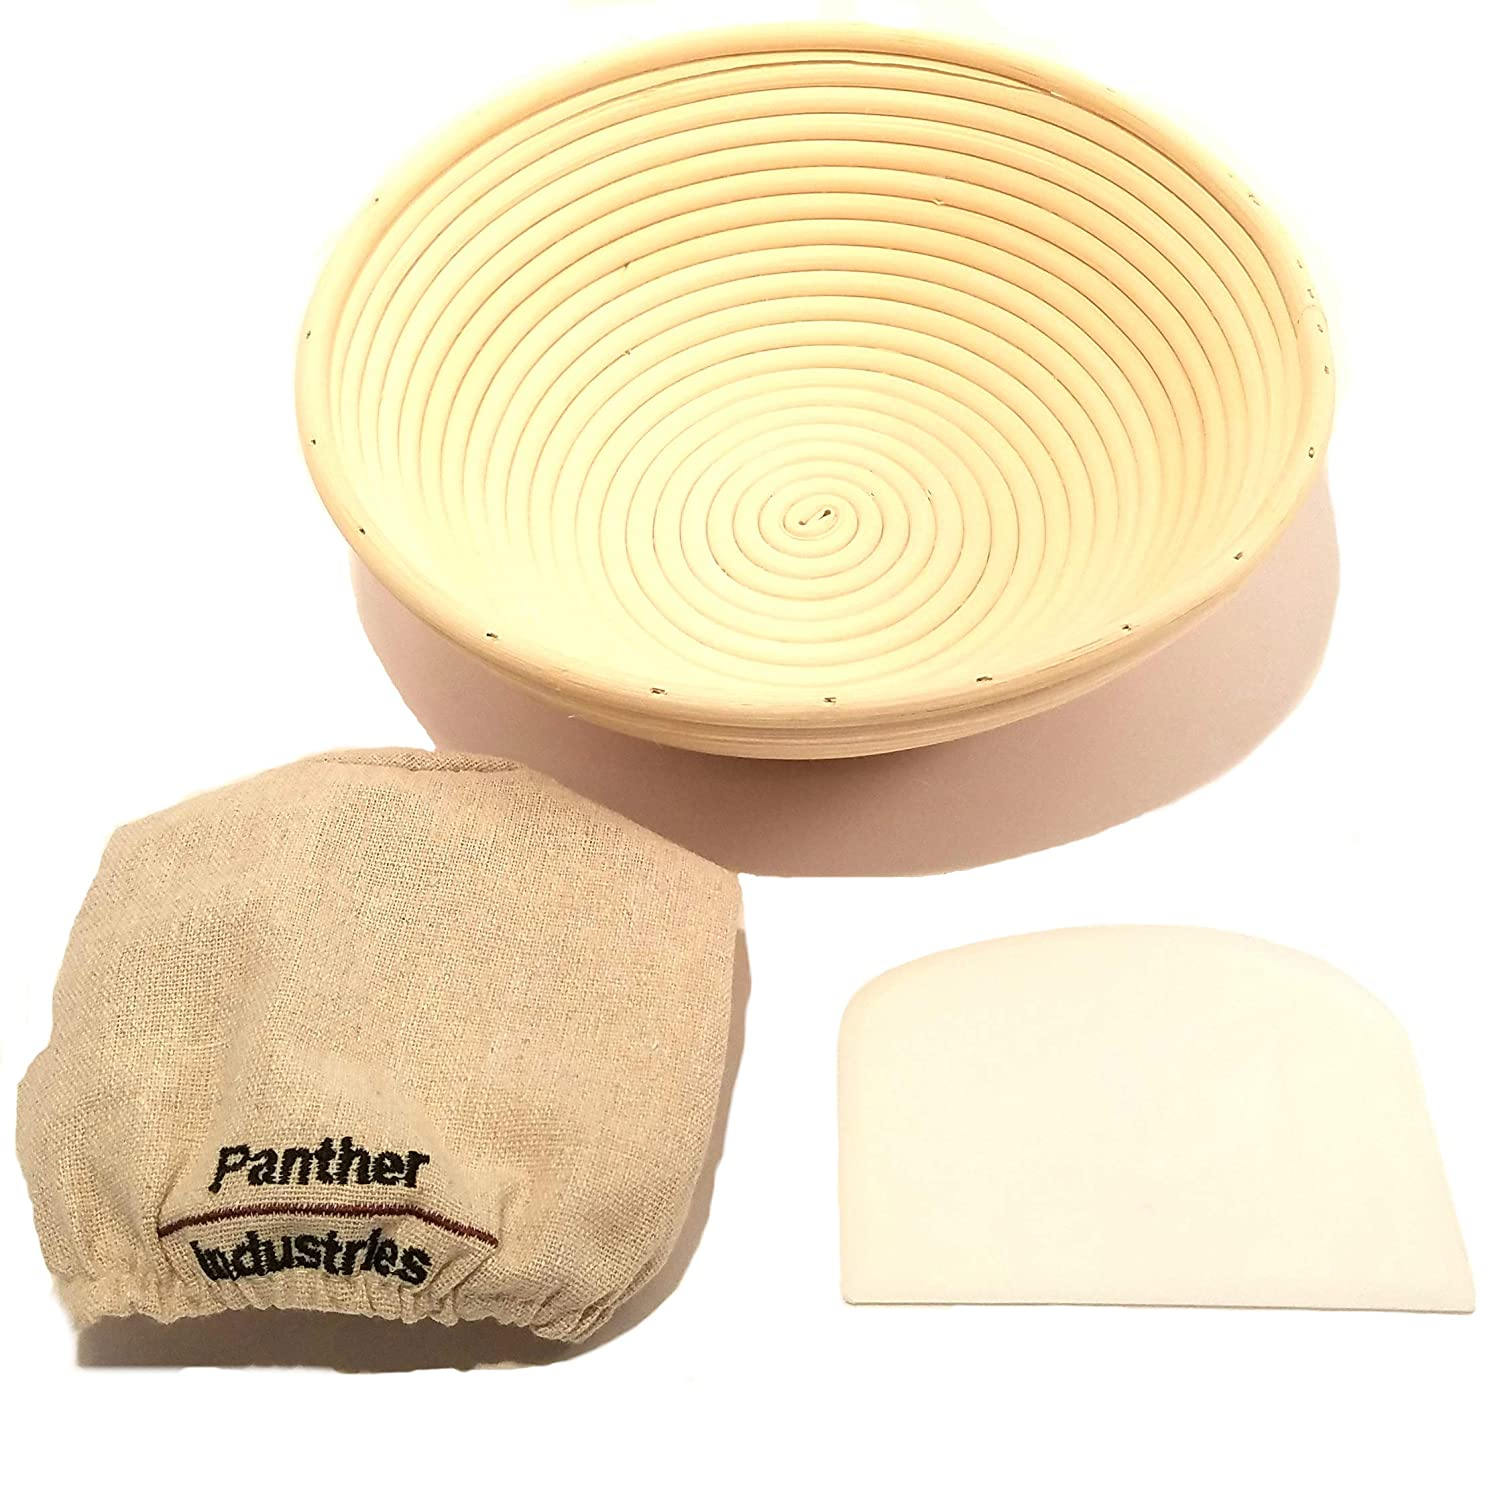 Bread Proofing Basket Set | 10 inch Banneton Basket + Bowl Scraper/Dough Cutter + Brotform Linen Liner Cloth, Perfect for Artisan Sourdough Bread made by Professional and Home Bakers